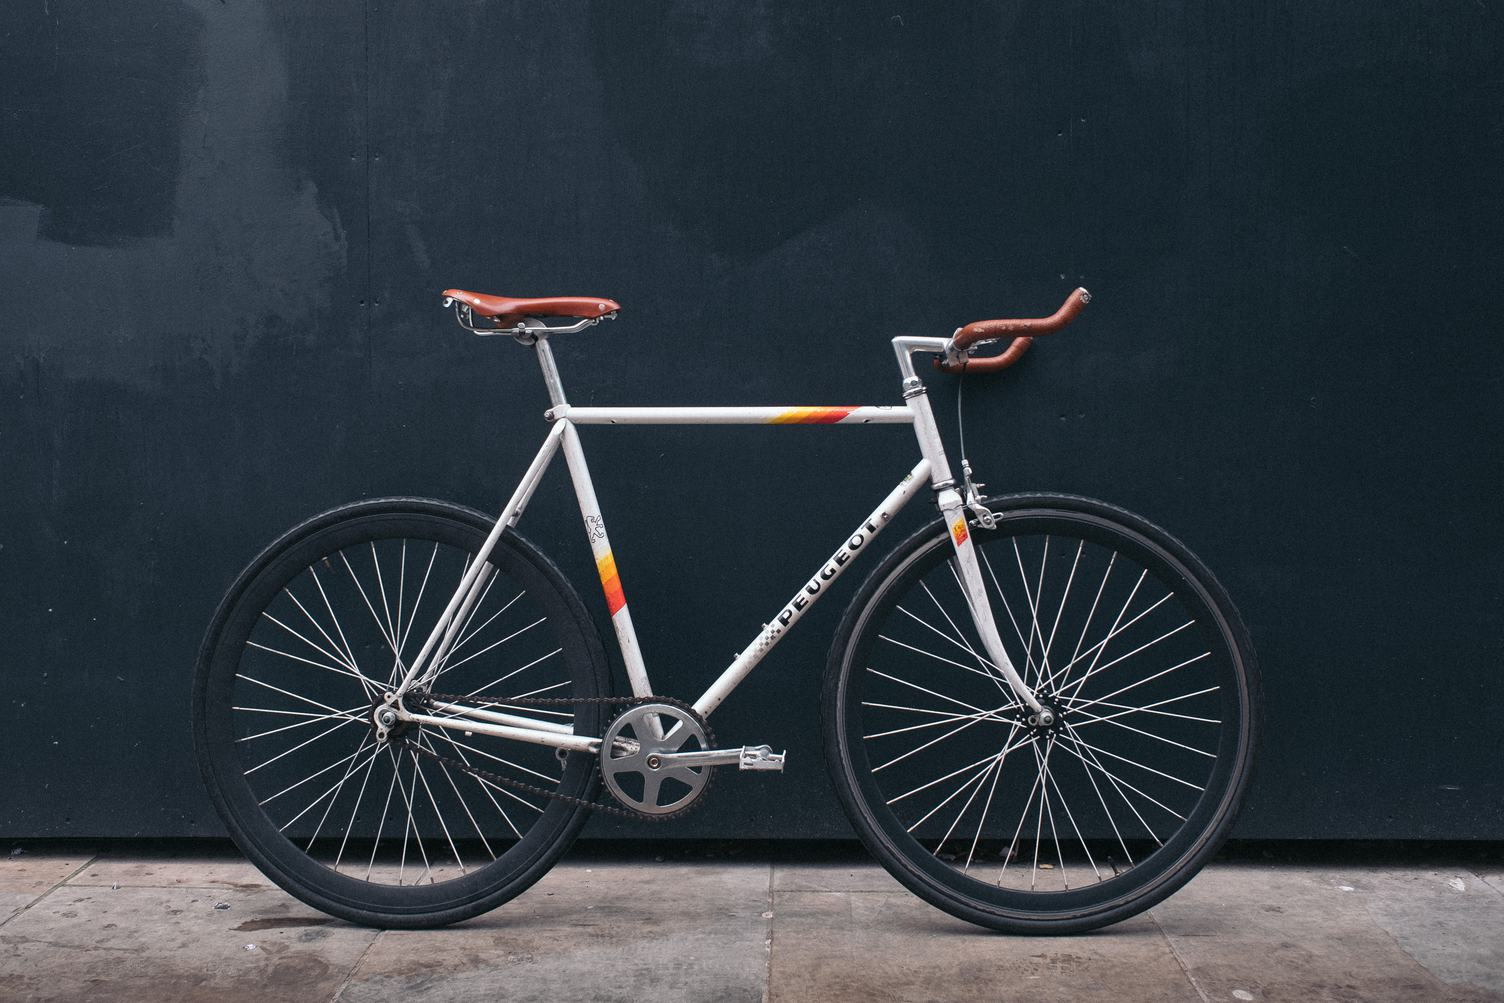 White Peugeot Bike Leaning on a Black Wall